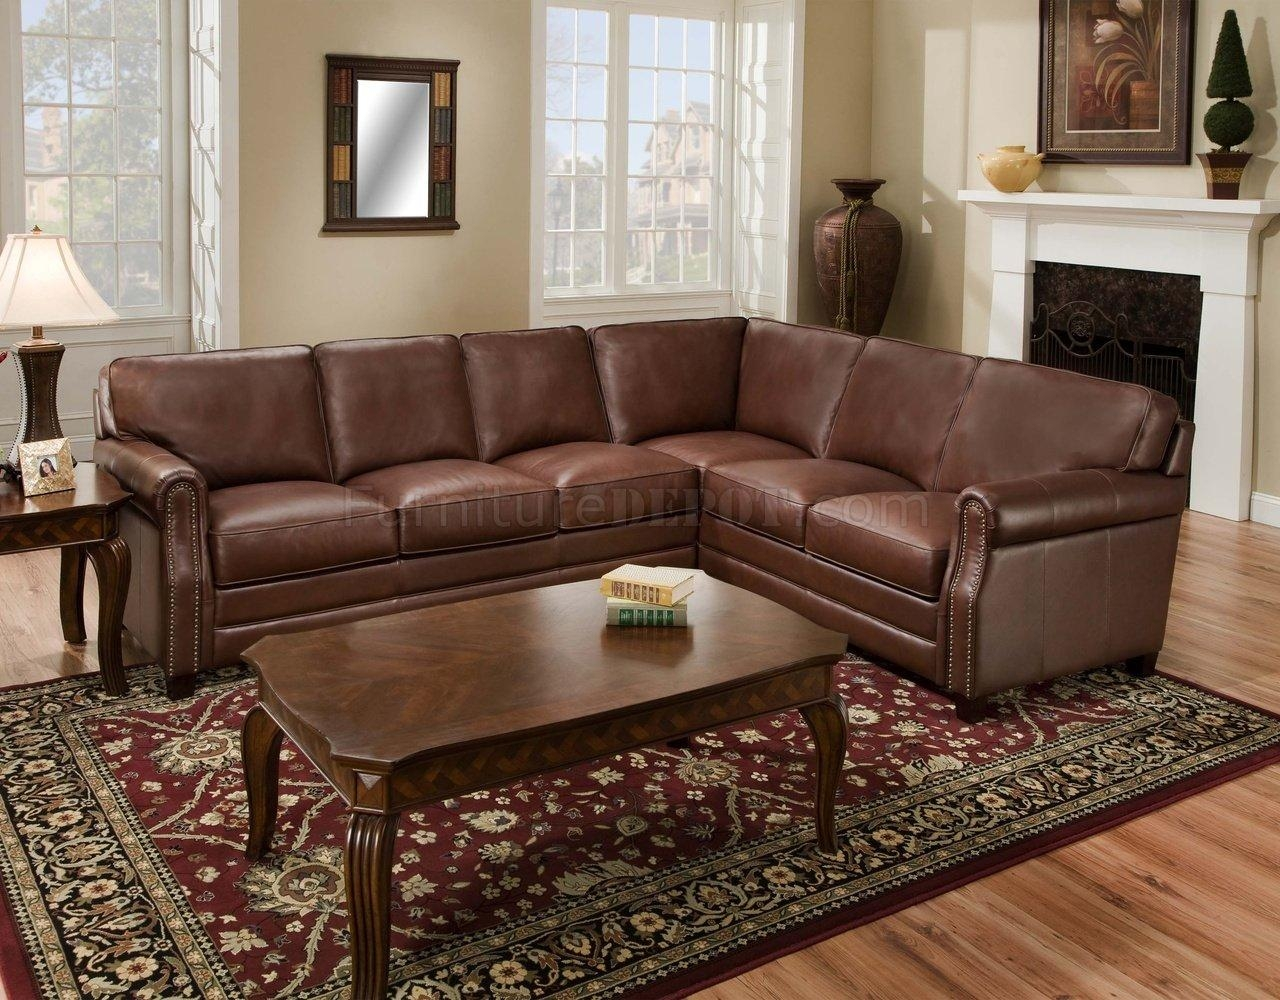 Brown Top Grain Italian Leather Traditional Sectional Sofa Pertaining To Traditional Sectional Sofas (View 4 of 20)